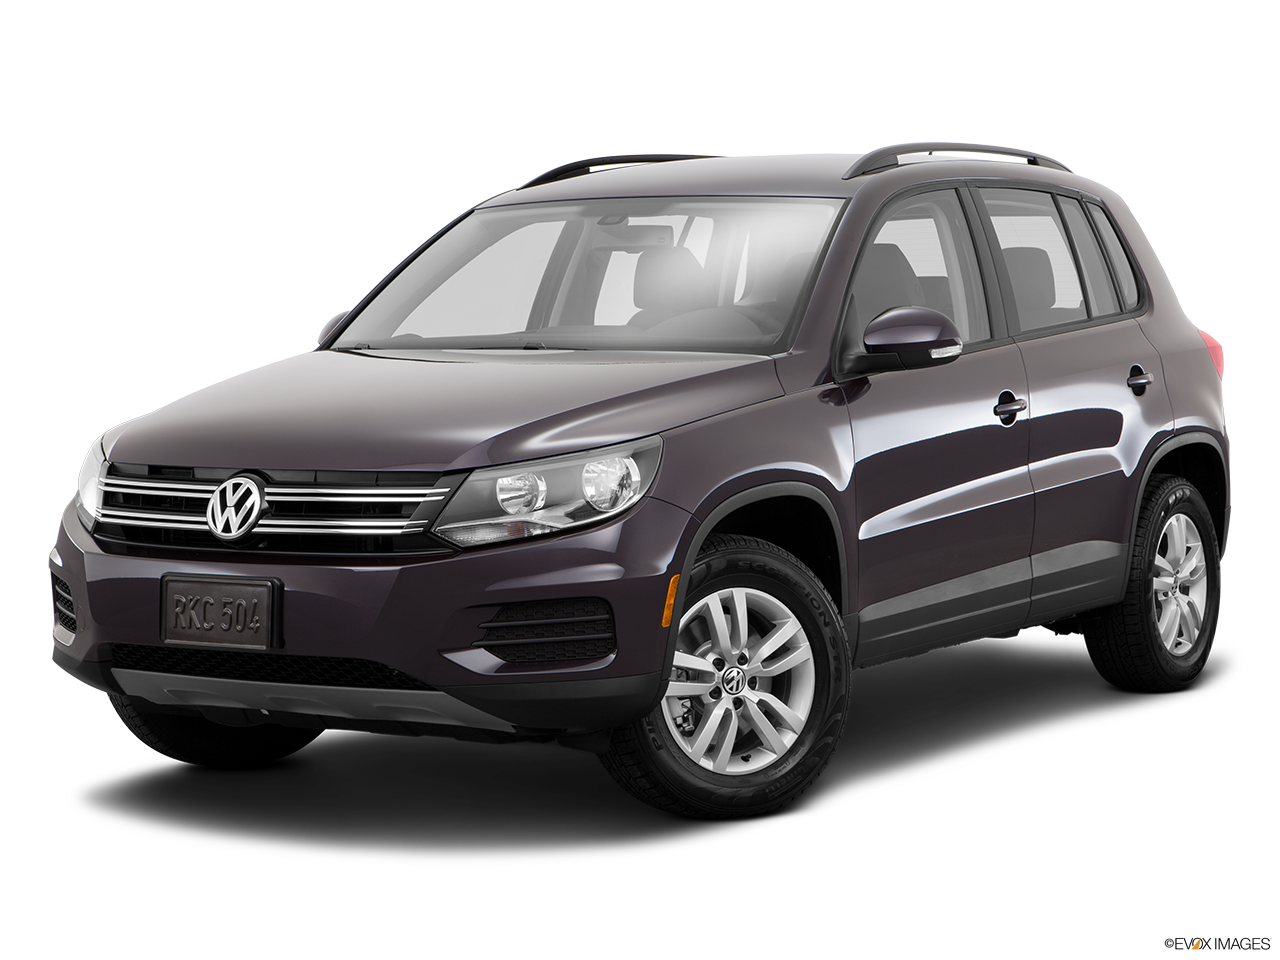 2016 volkswagen tiguan hampton roads casey volkswagen. Black Bedroom Furniture Sets. Home Design Ideas